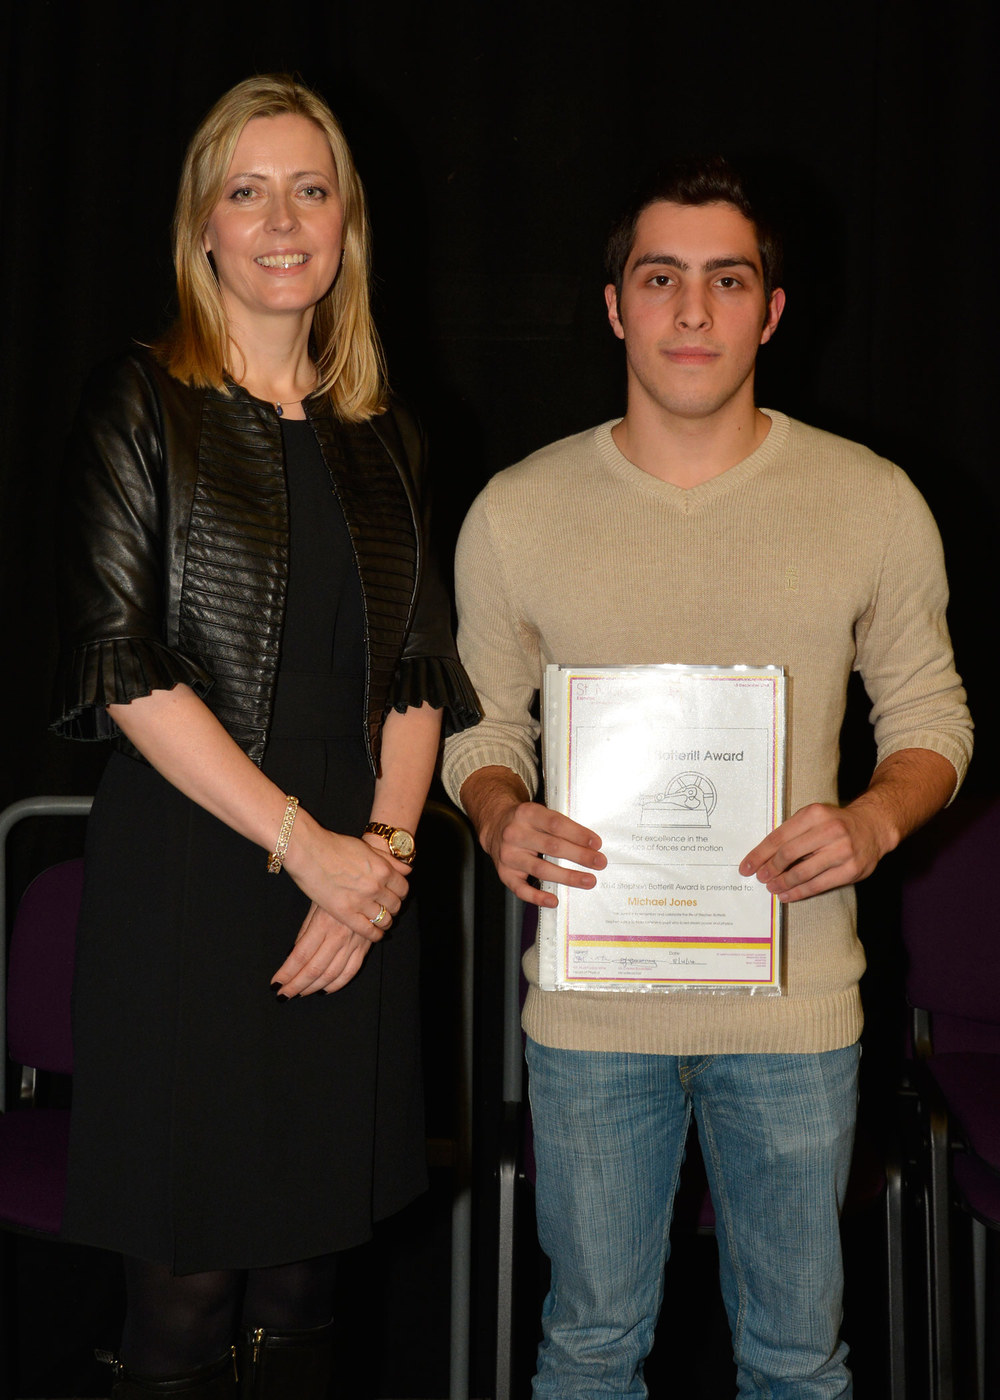 Photo: Former St. Mary's Menston pupil Joanne Milner, CEO of Debretts with Michael Jones, Year 13 Presentation Evening, 18 December 2014